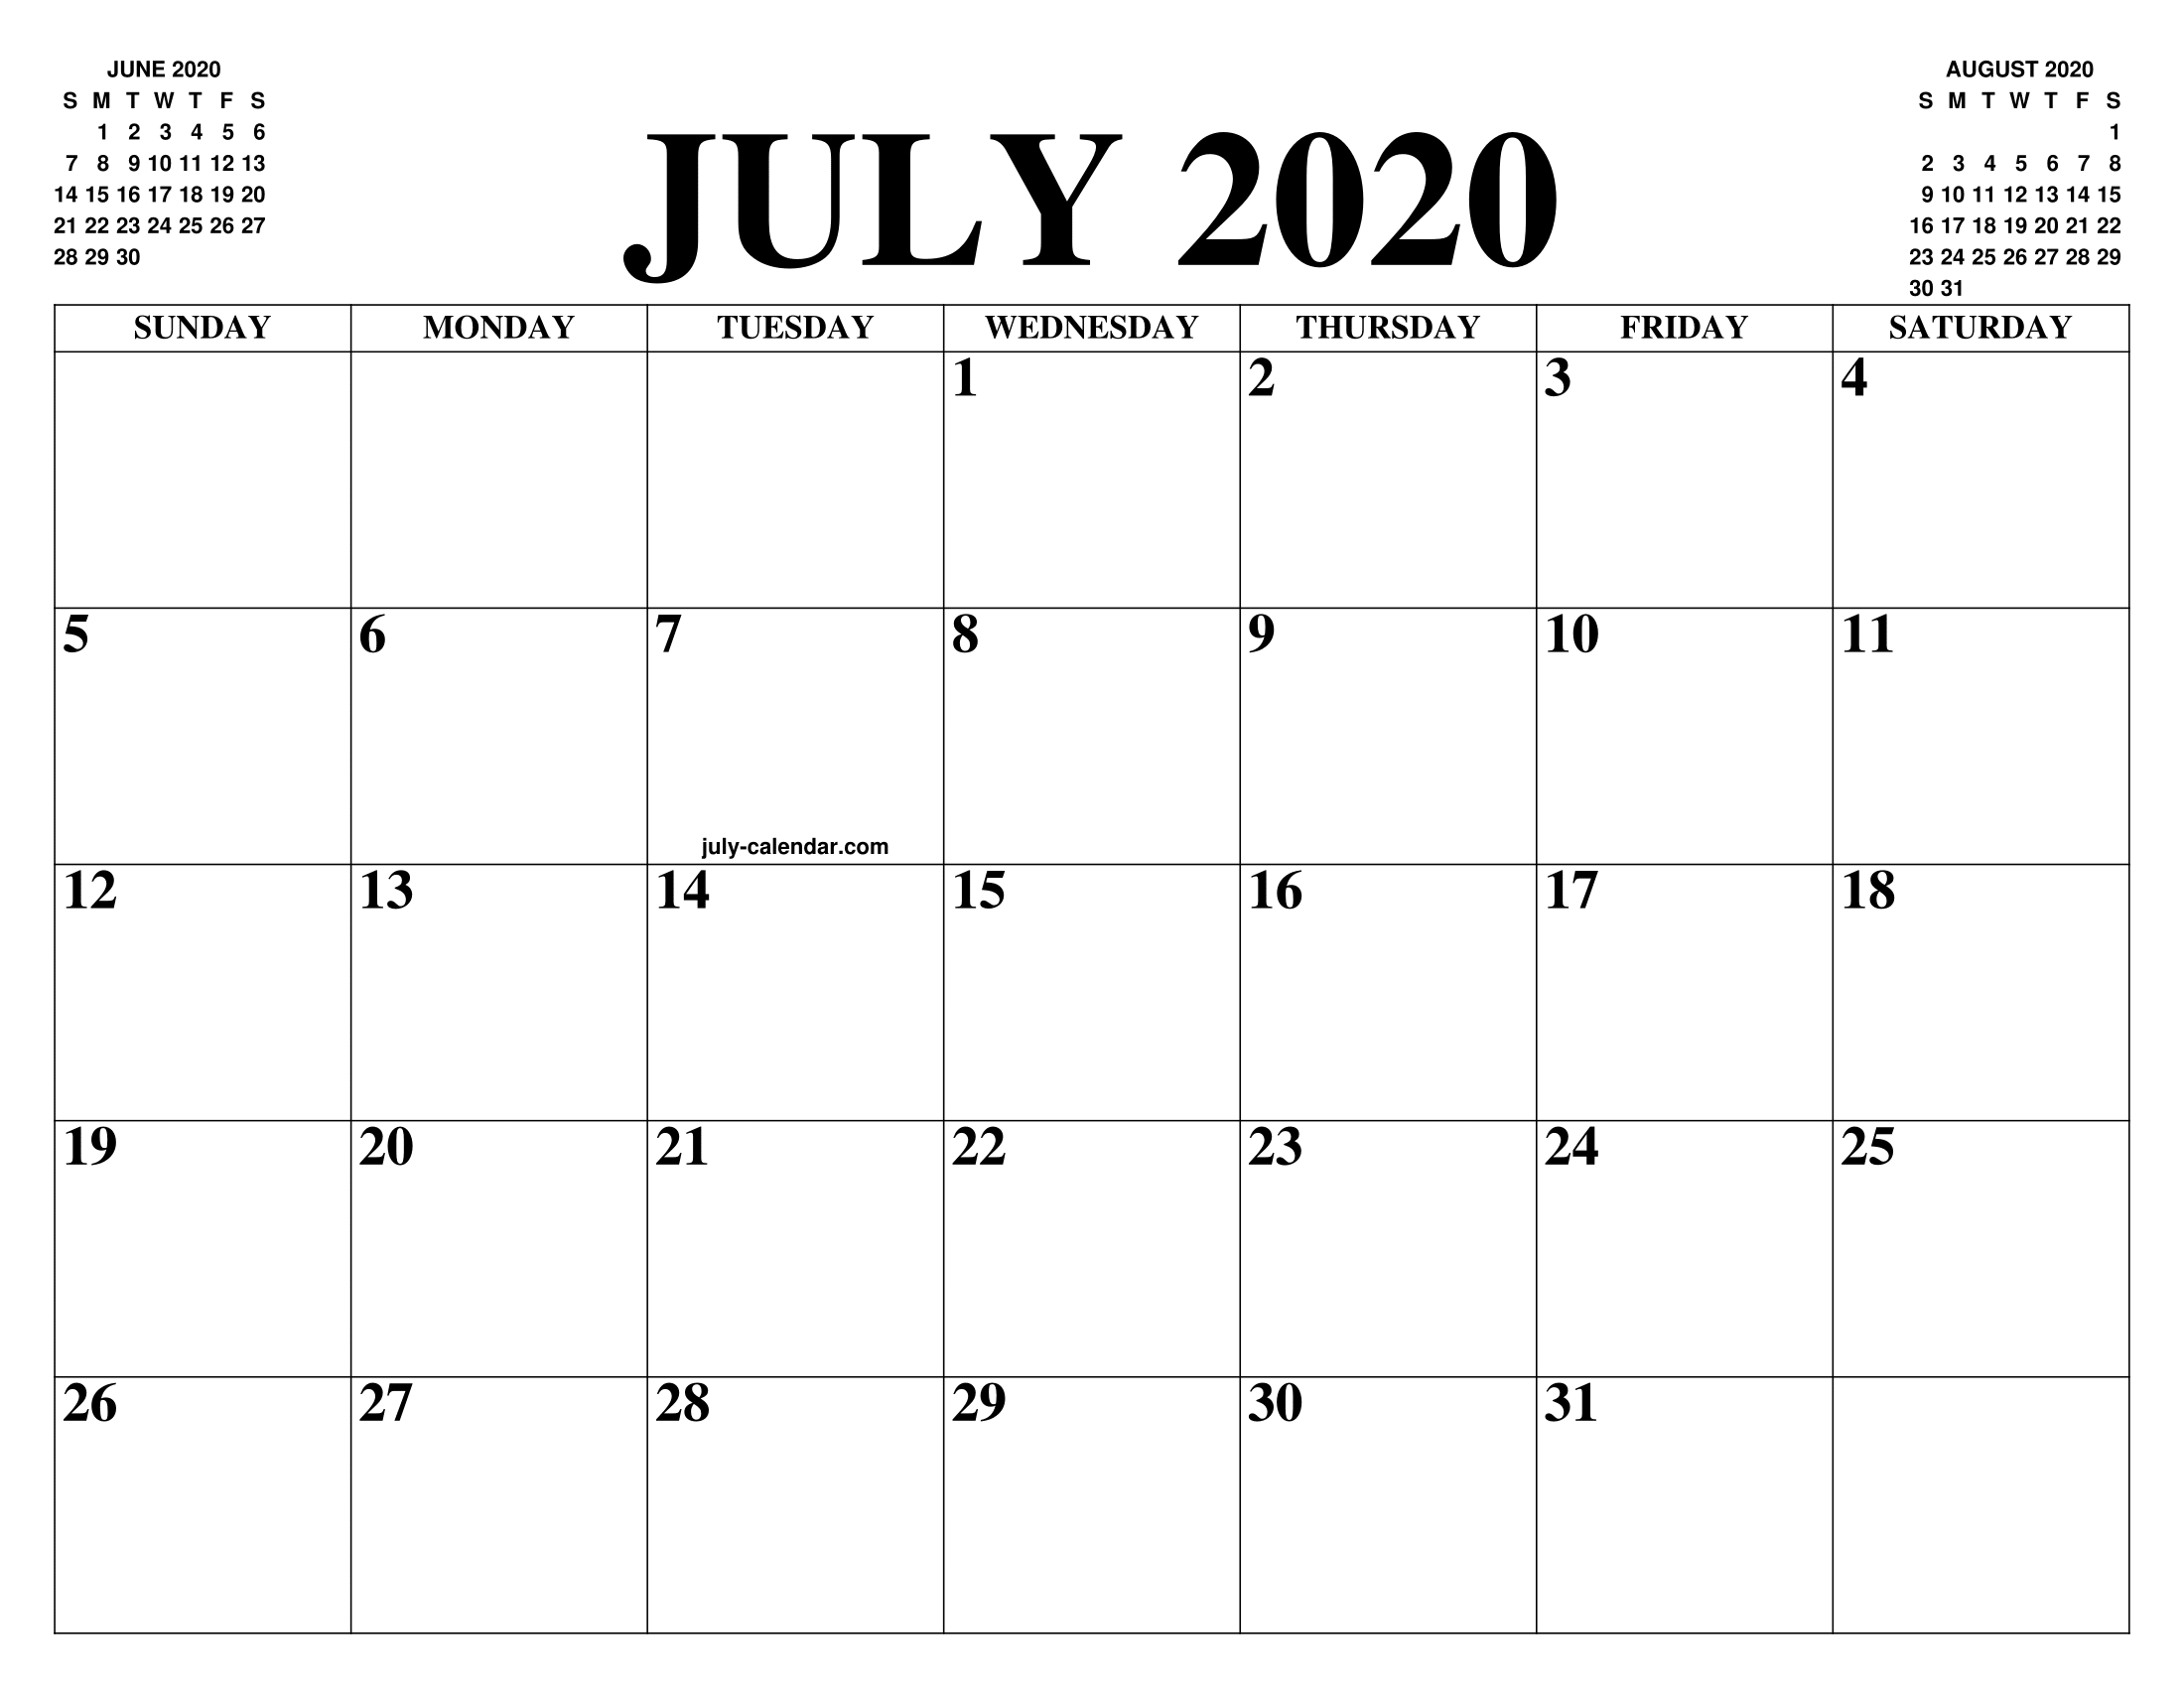 JULY 2020 CALENDAR OF THE MONTH: FREE PRINTABLE JULY 2020 ...